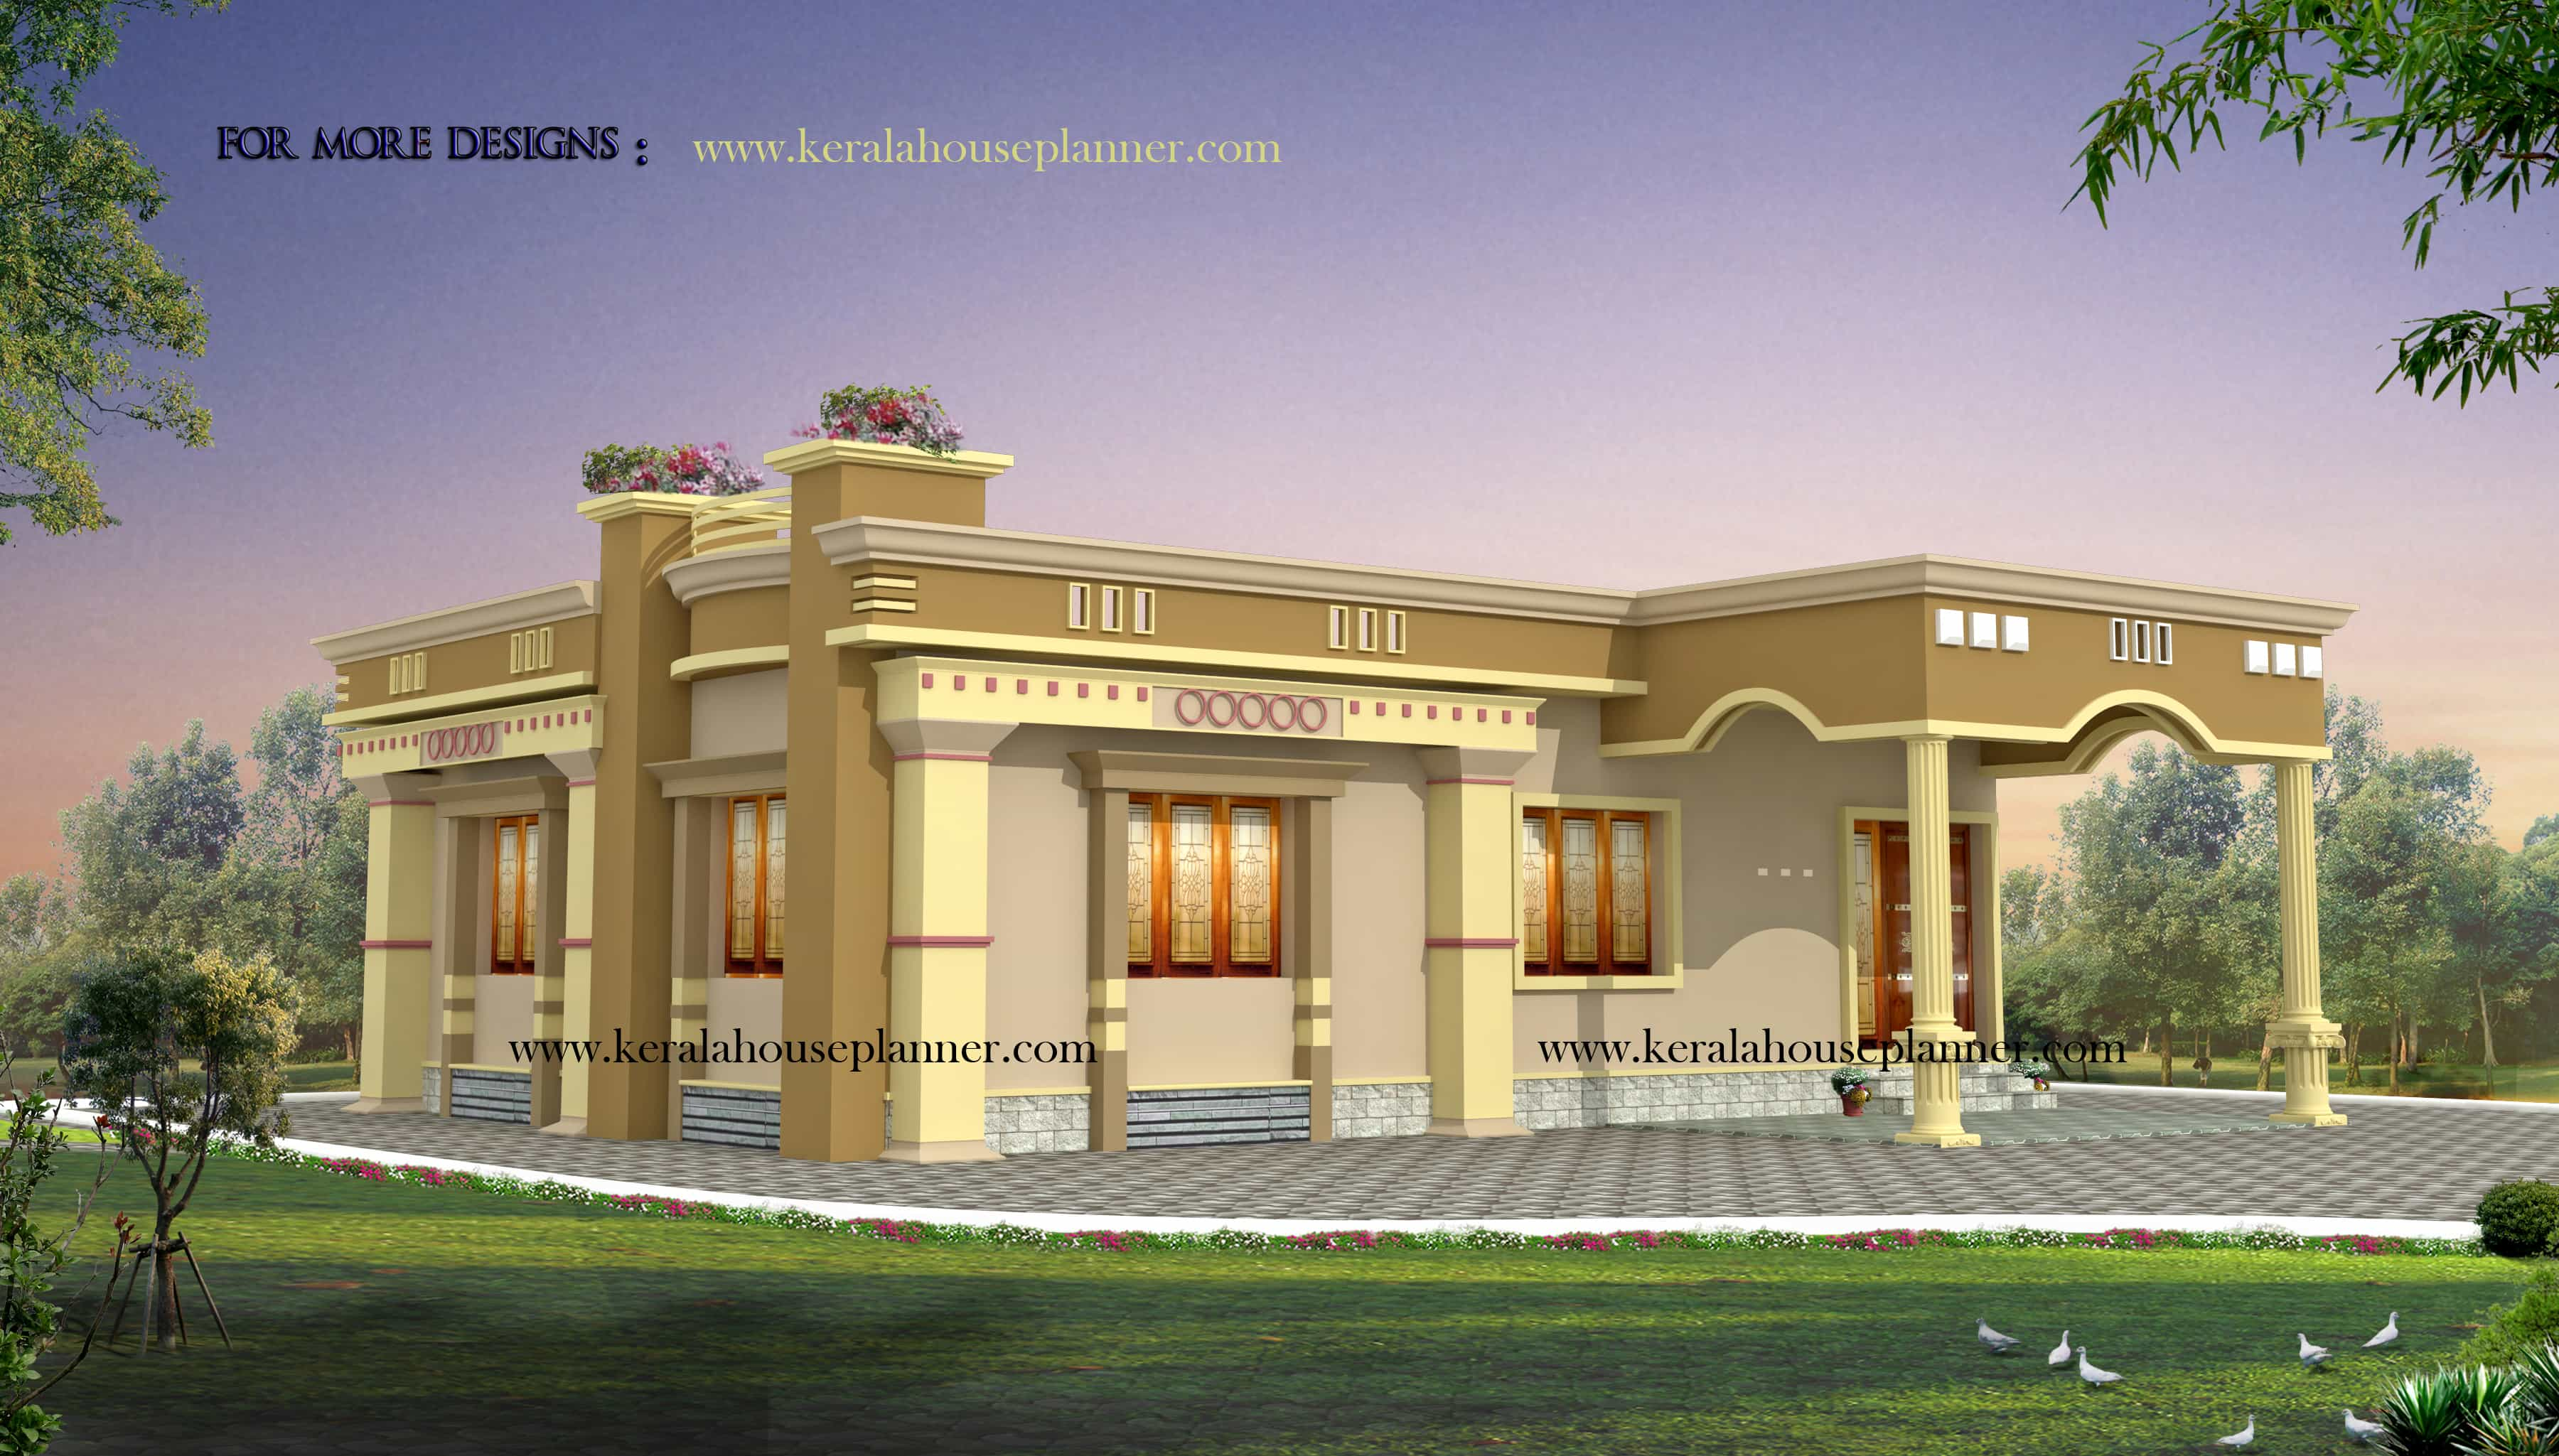 Kerala house plans 1200 sq ft with photos khp Home design